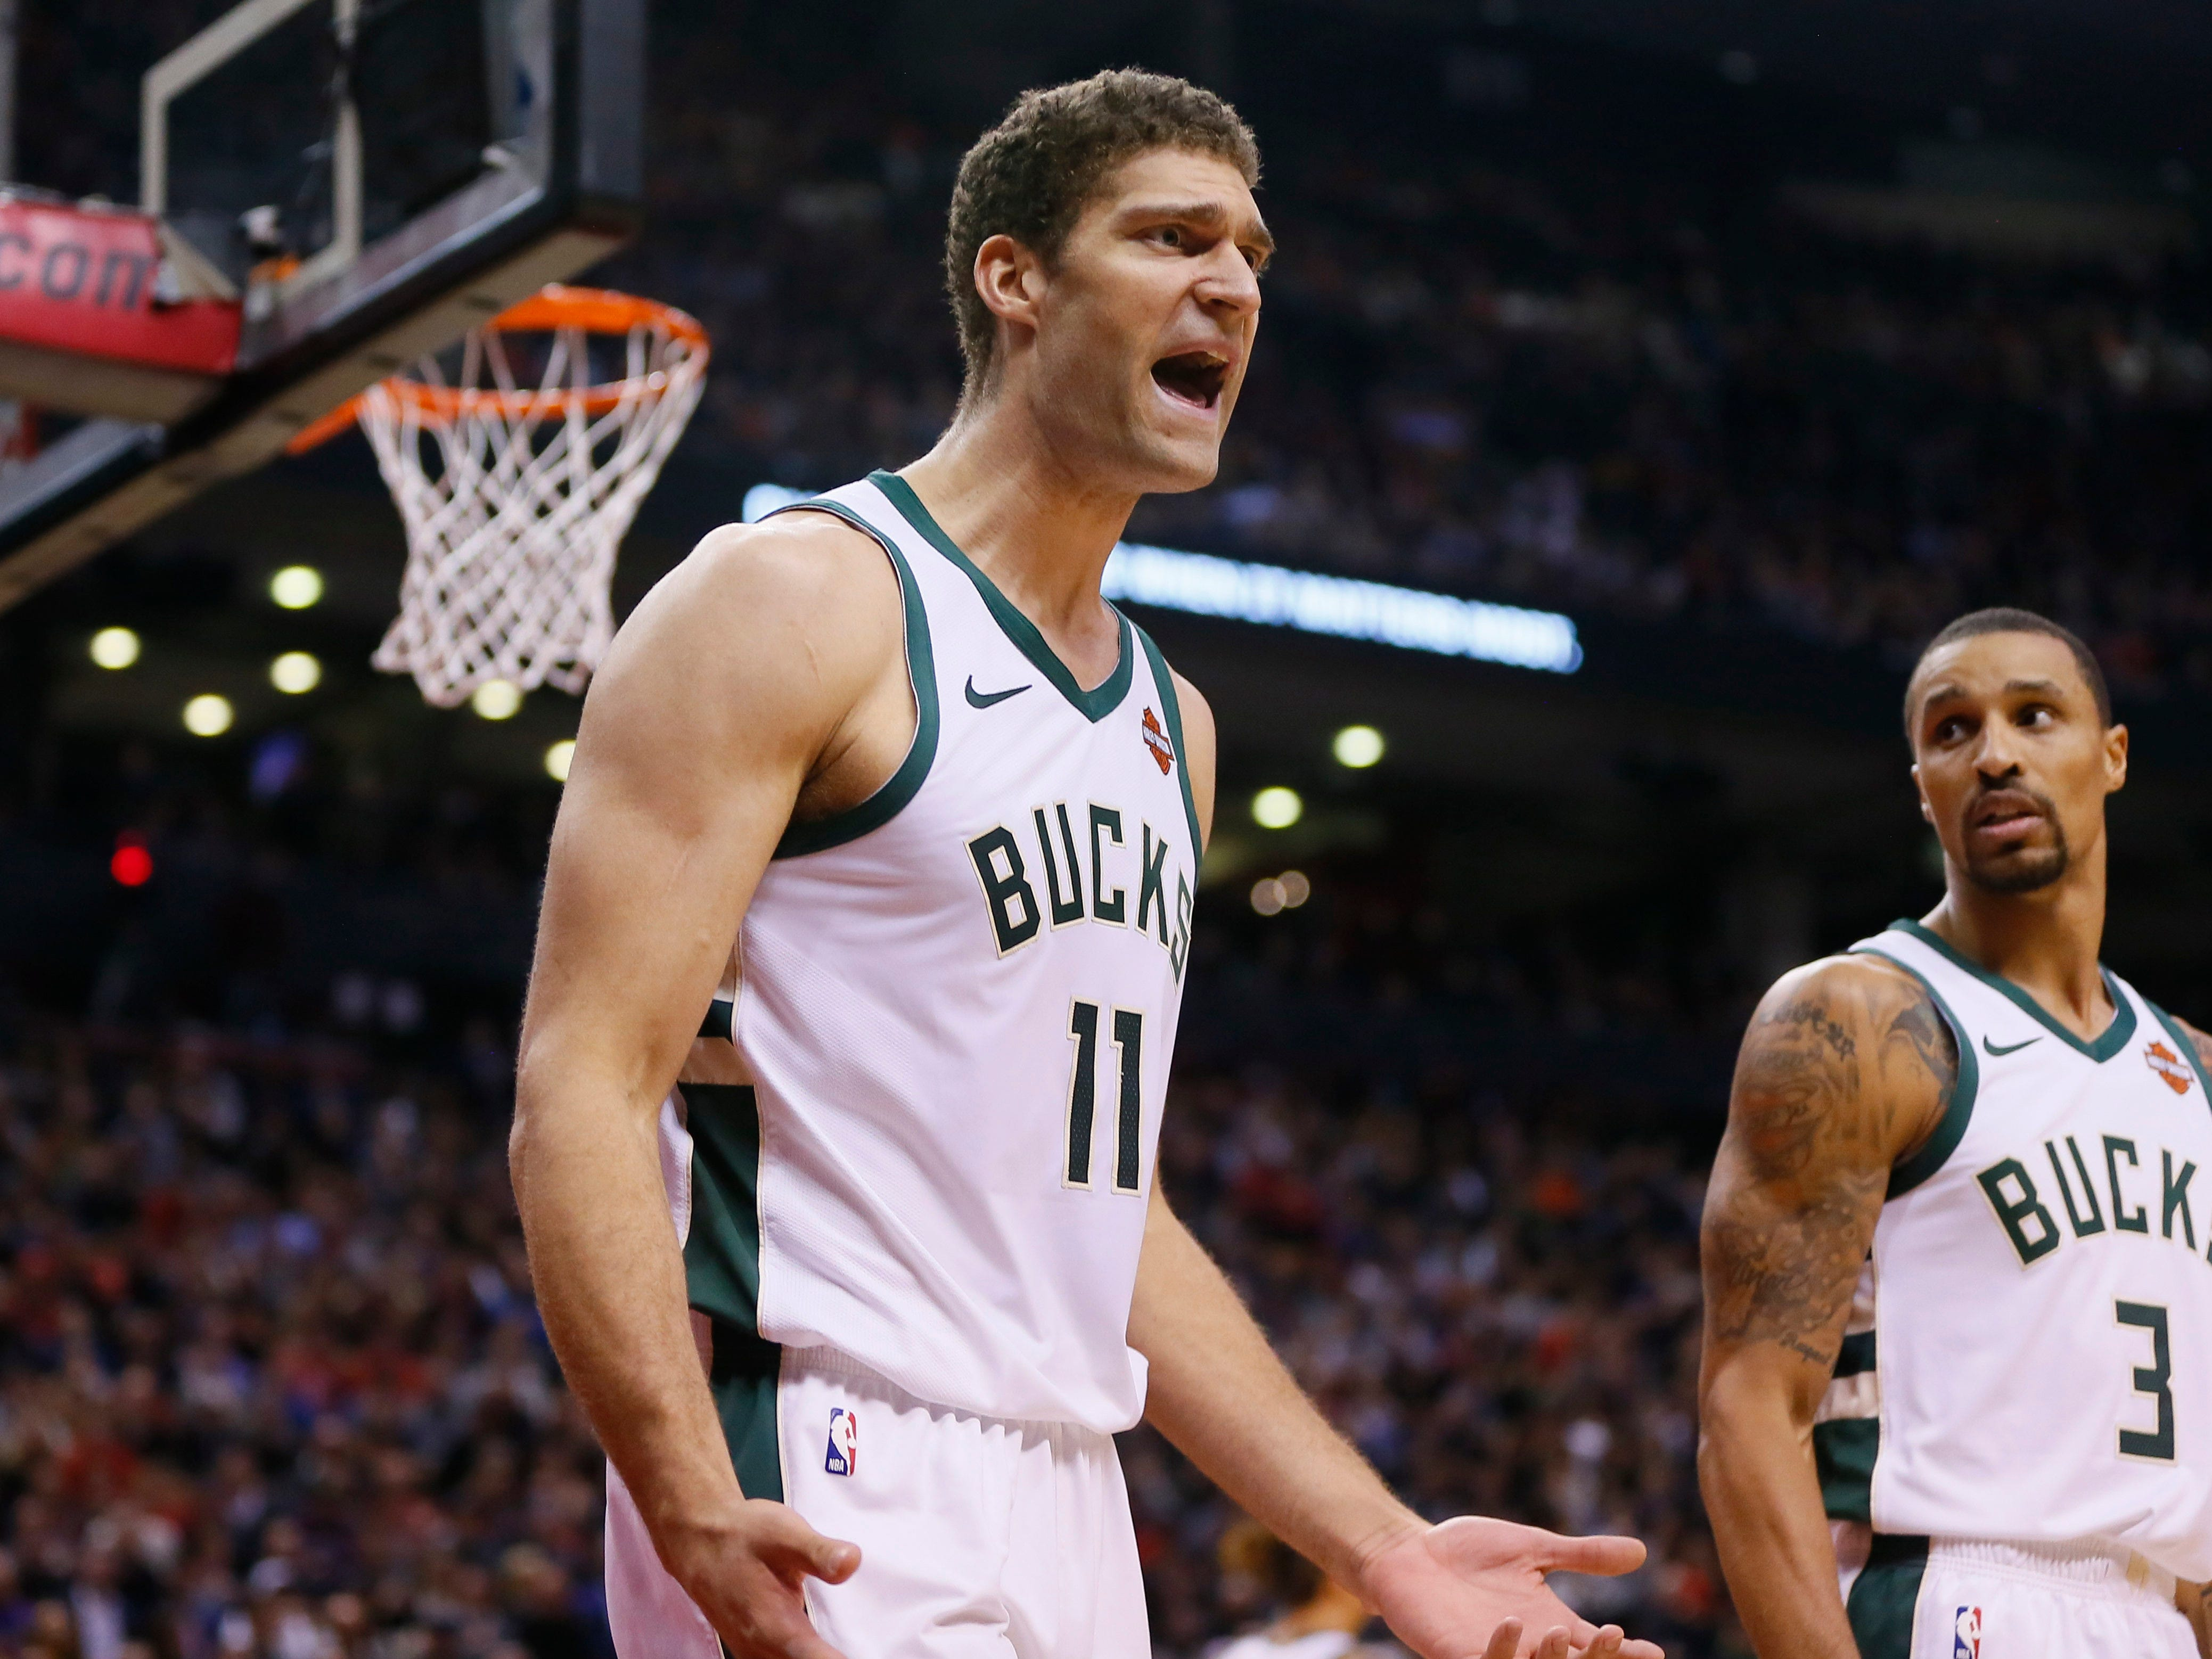 Bucks center Brook Lopez can't believe that he was whistled for a foul during the game against the Raptors on Thursday night.